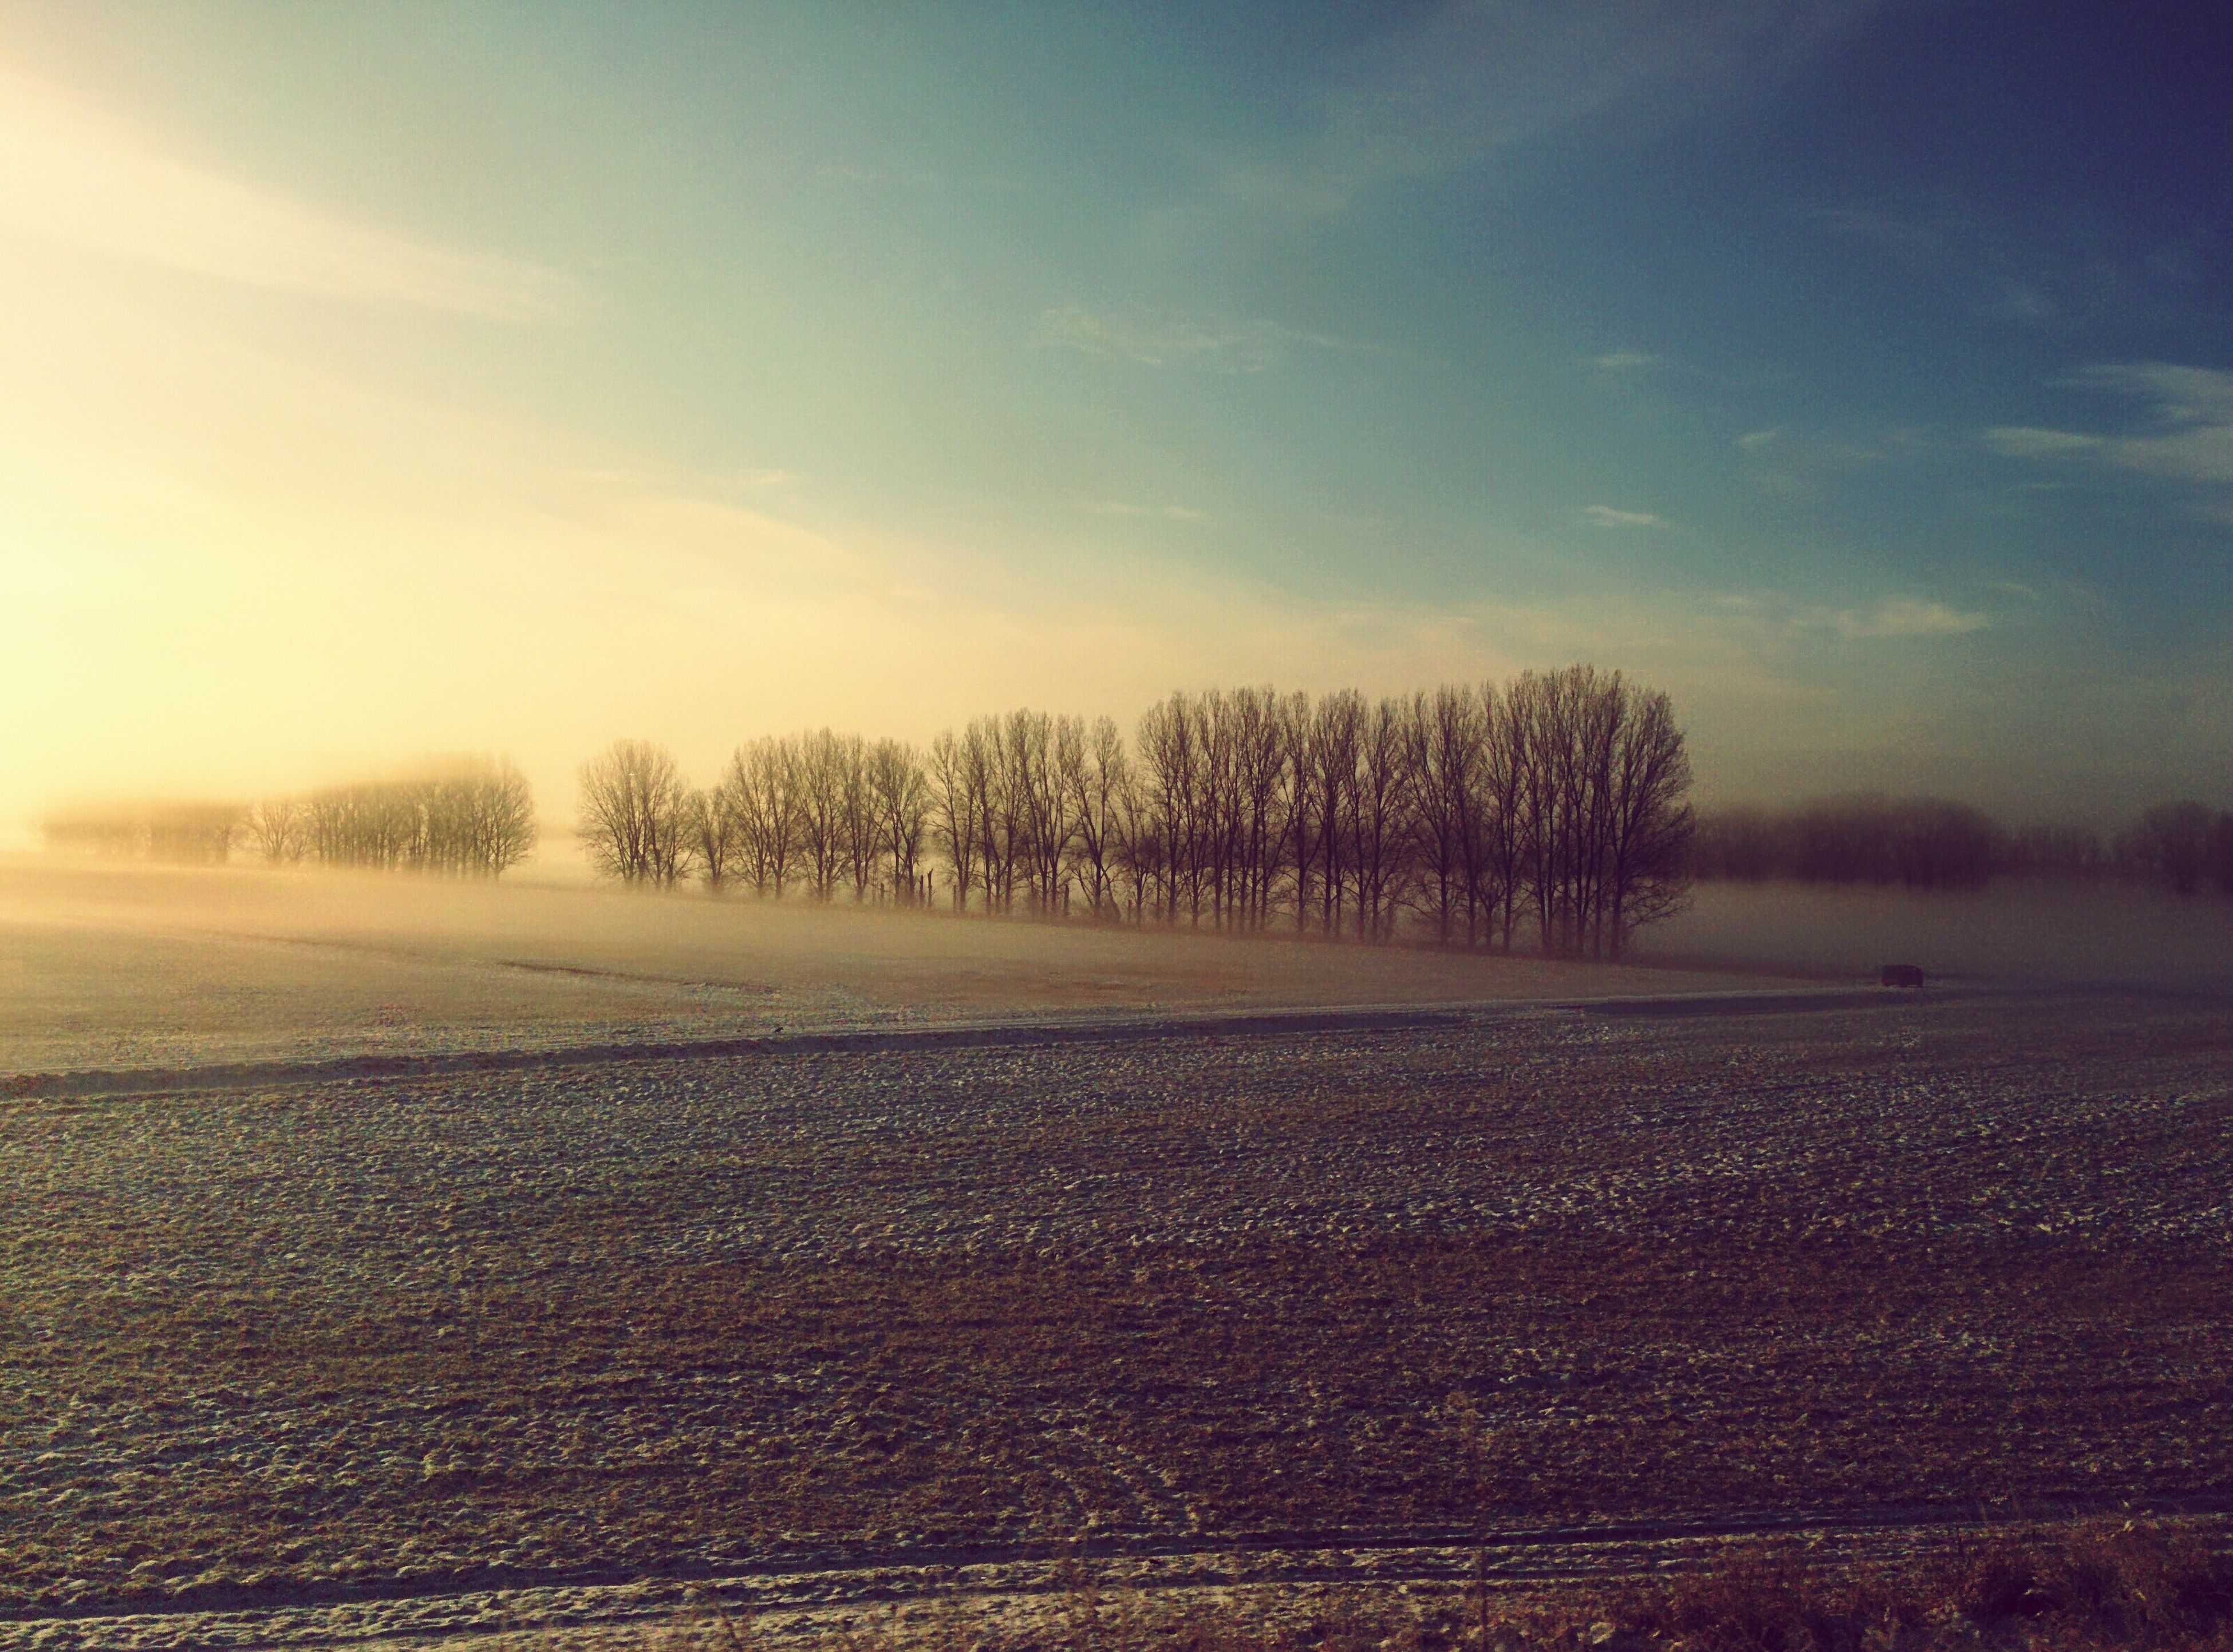 winter, snow, cold temperature, tree, tranquil scene, landscape, tranquility, weather, sky, scenics, nature, season, beauty in nature, field, bare tree, sunset, covering, non-urban scene, cloud - sky, dusk